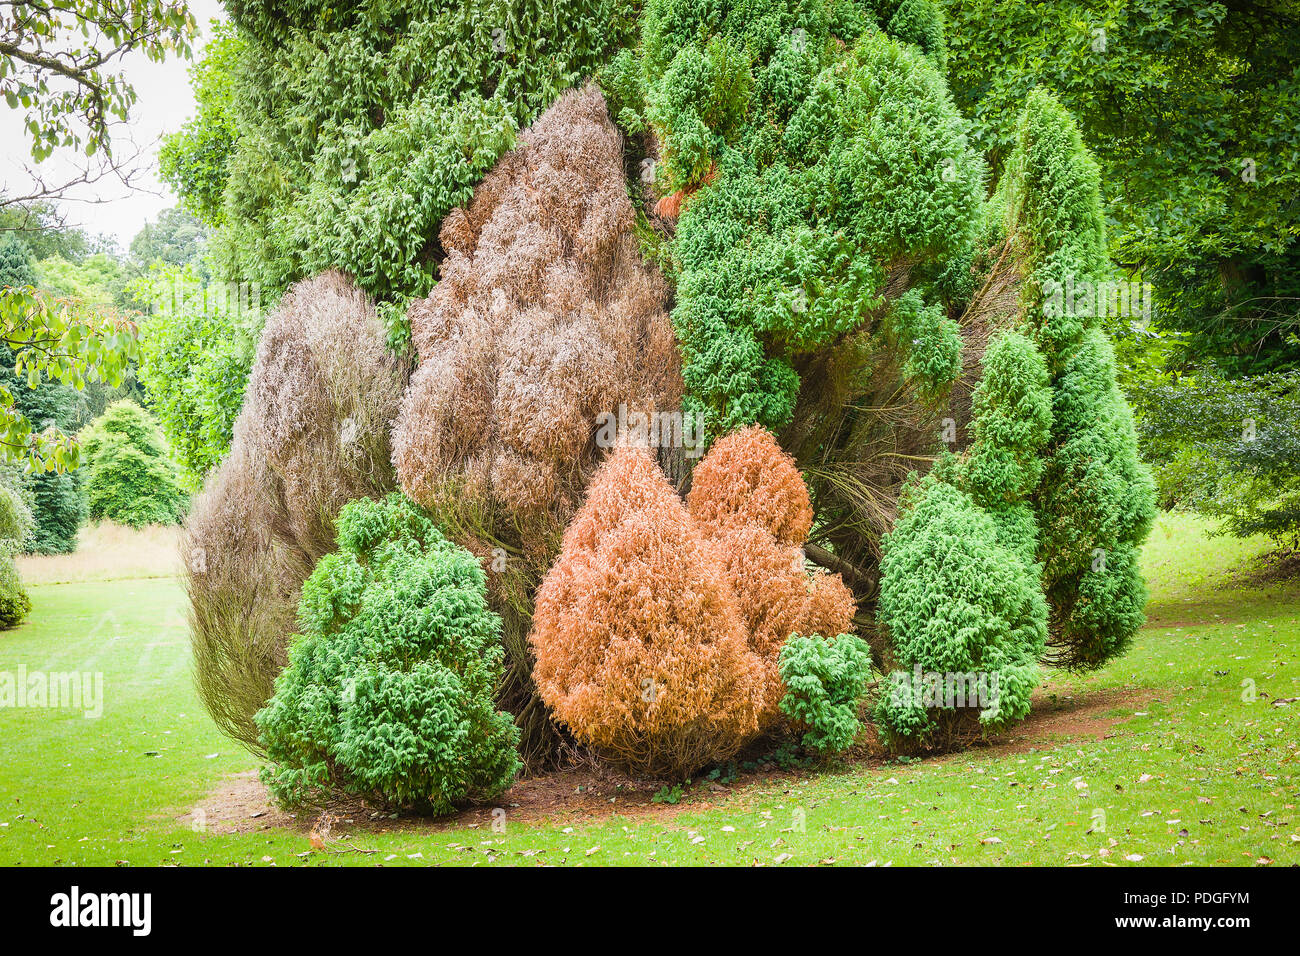 A small neat colony of conical conifers in an English parkland setting showing signs of distress or death possibly due to drought Stock Photo